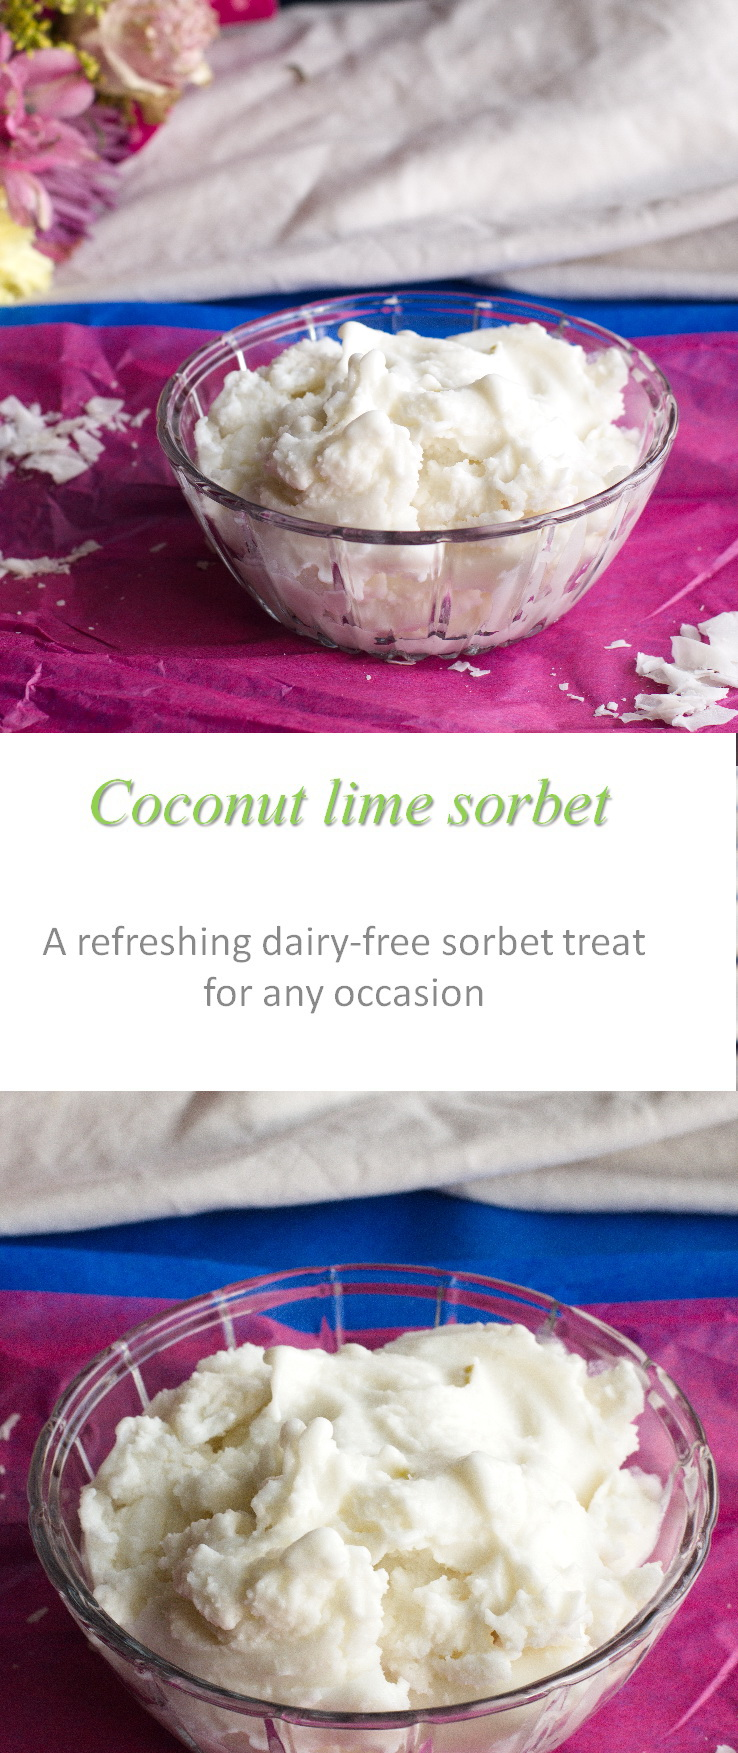 A refreshing, dairy-free coconut lime sorbet that will impress #sorbet #cookathome #glutenfree #dairyfree